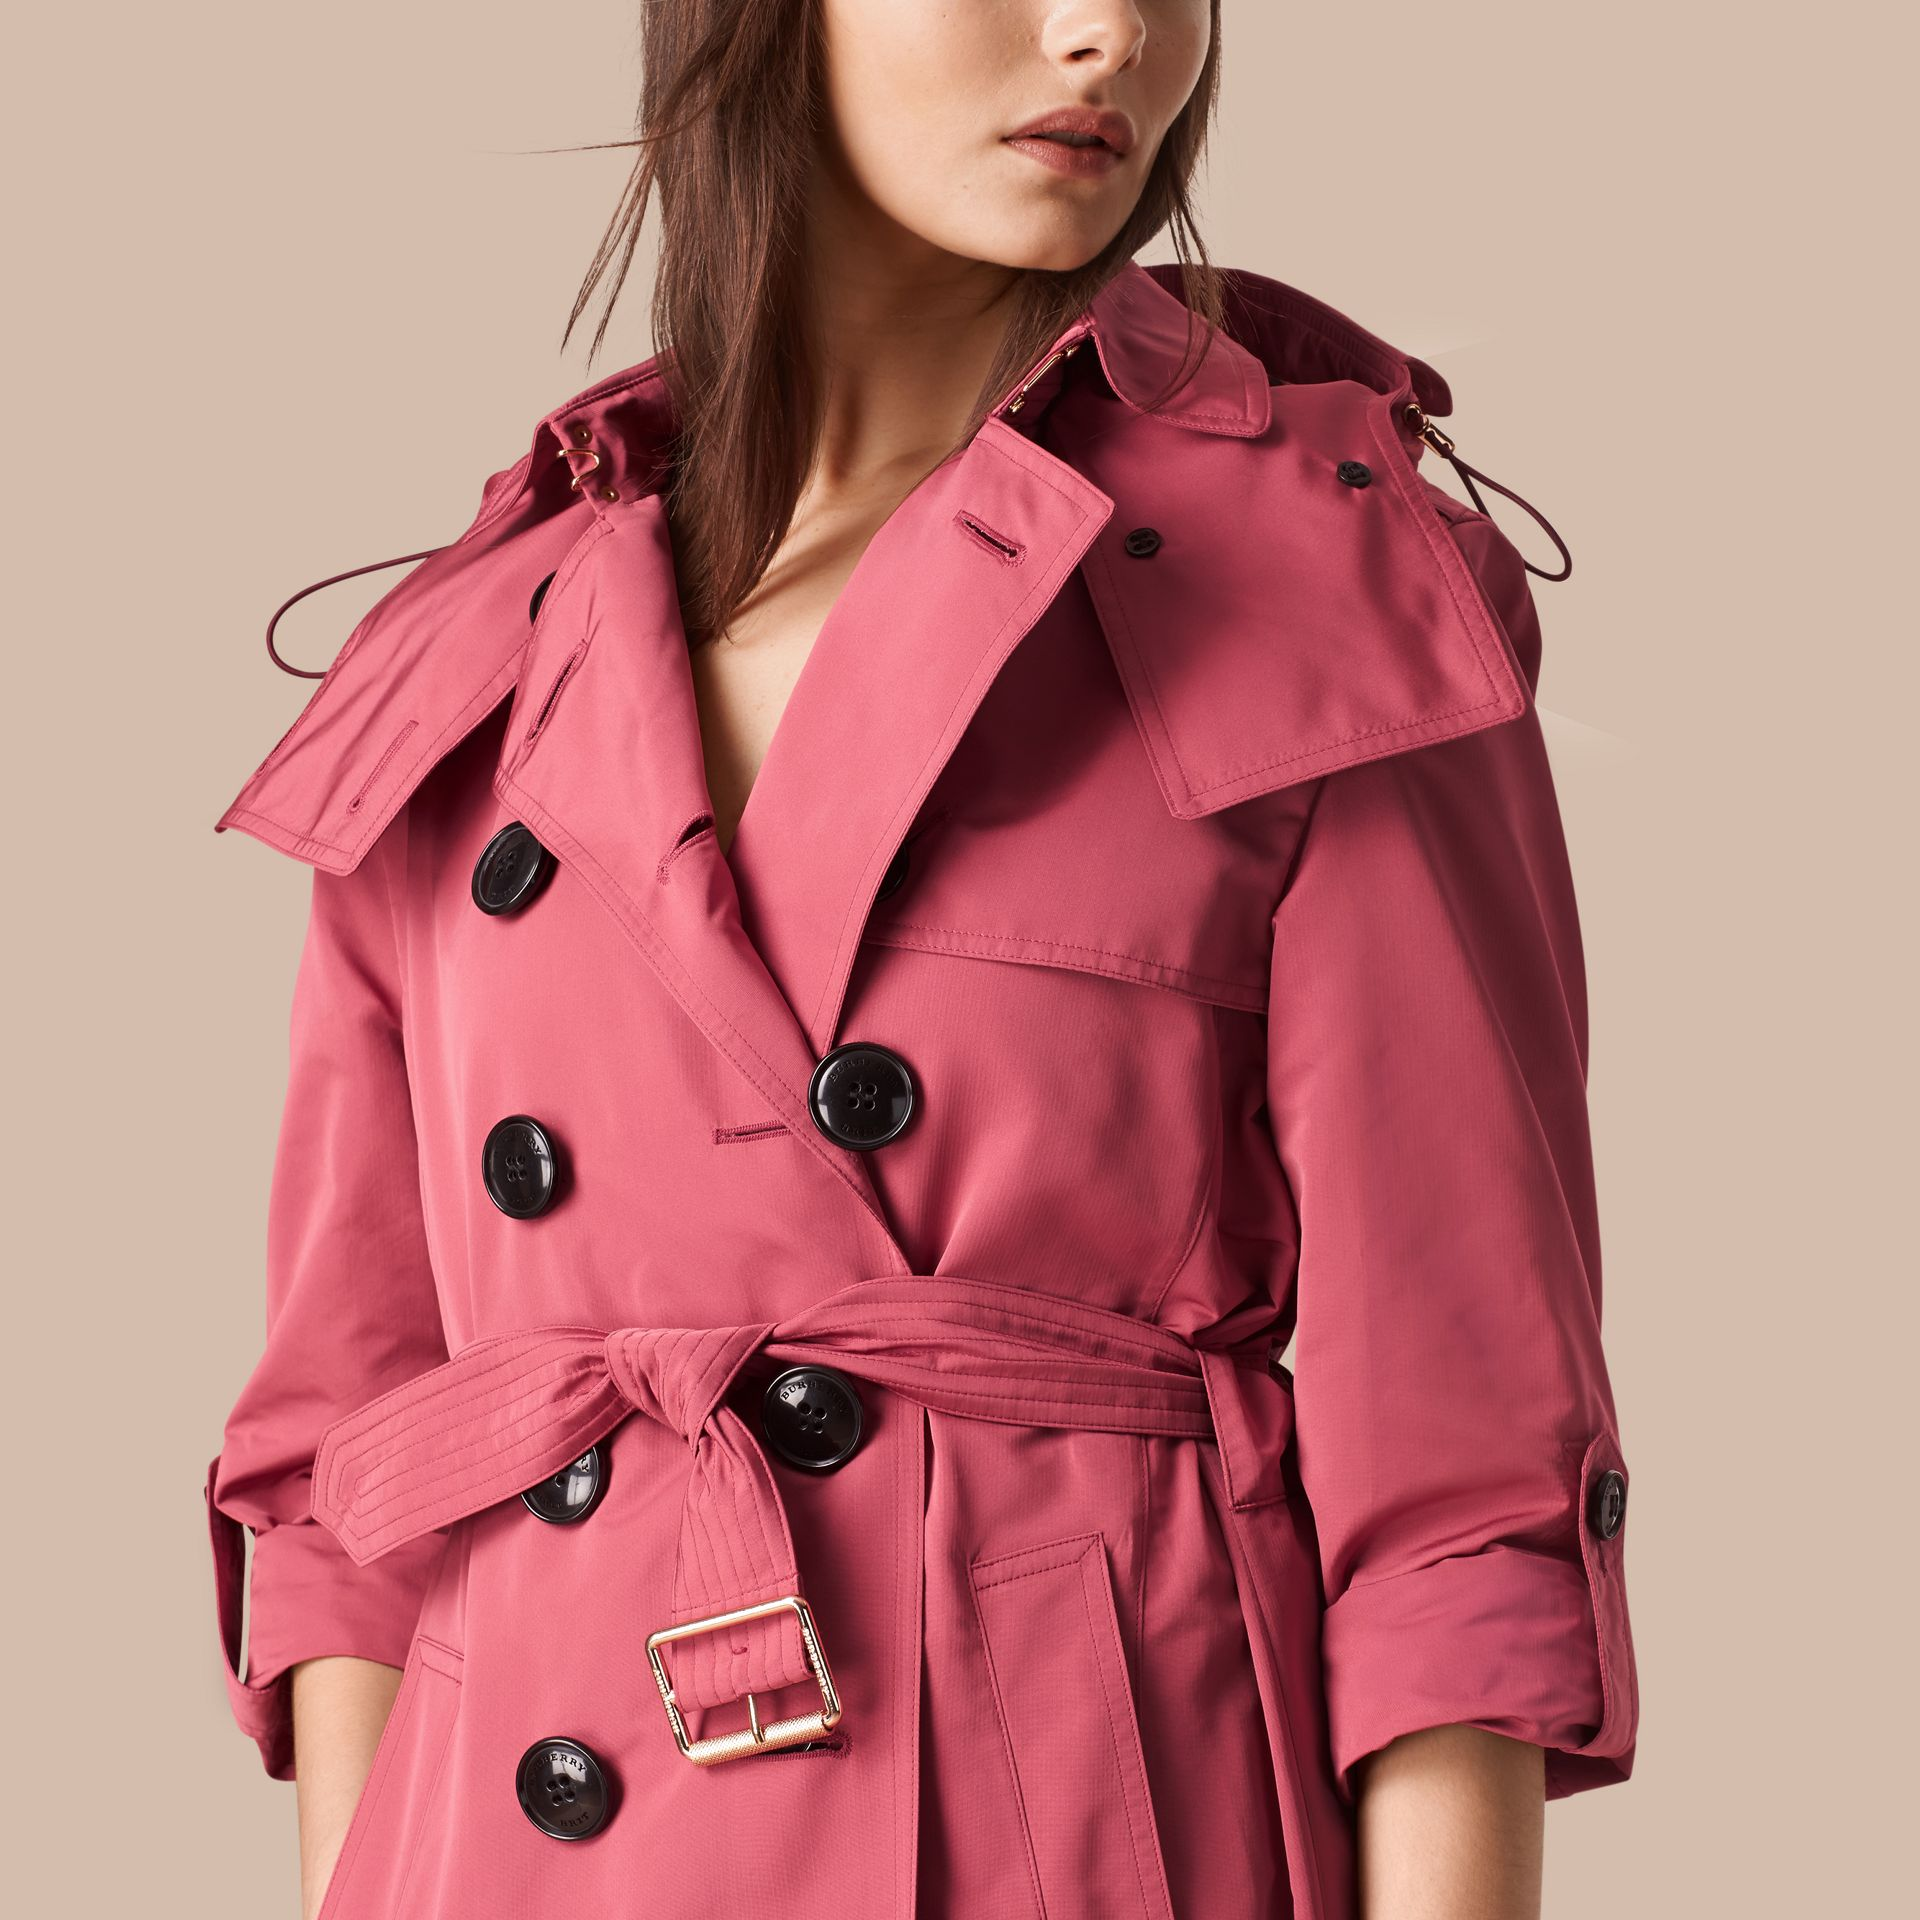 Bright copper pink Showerproof Trench Coat with Detachable Hood Bright Copper Pink - gallery image 4